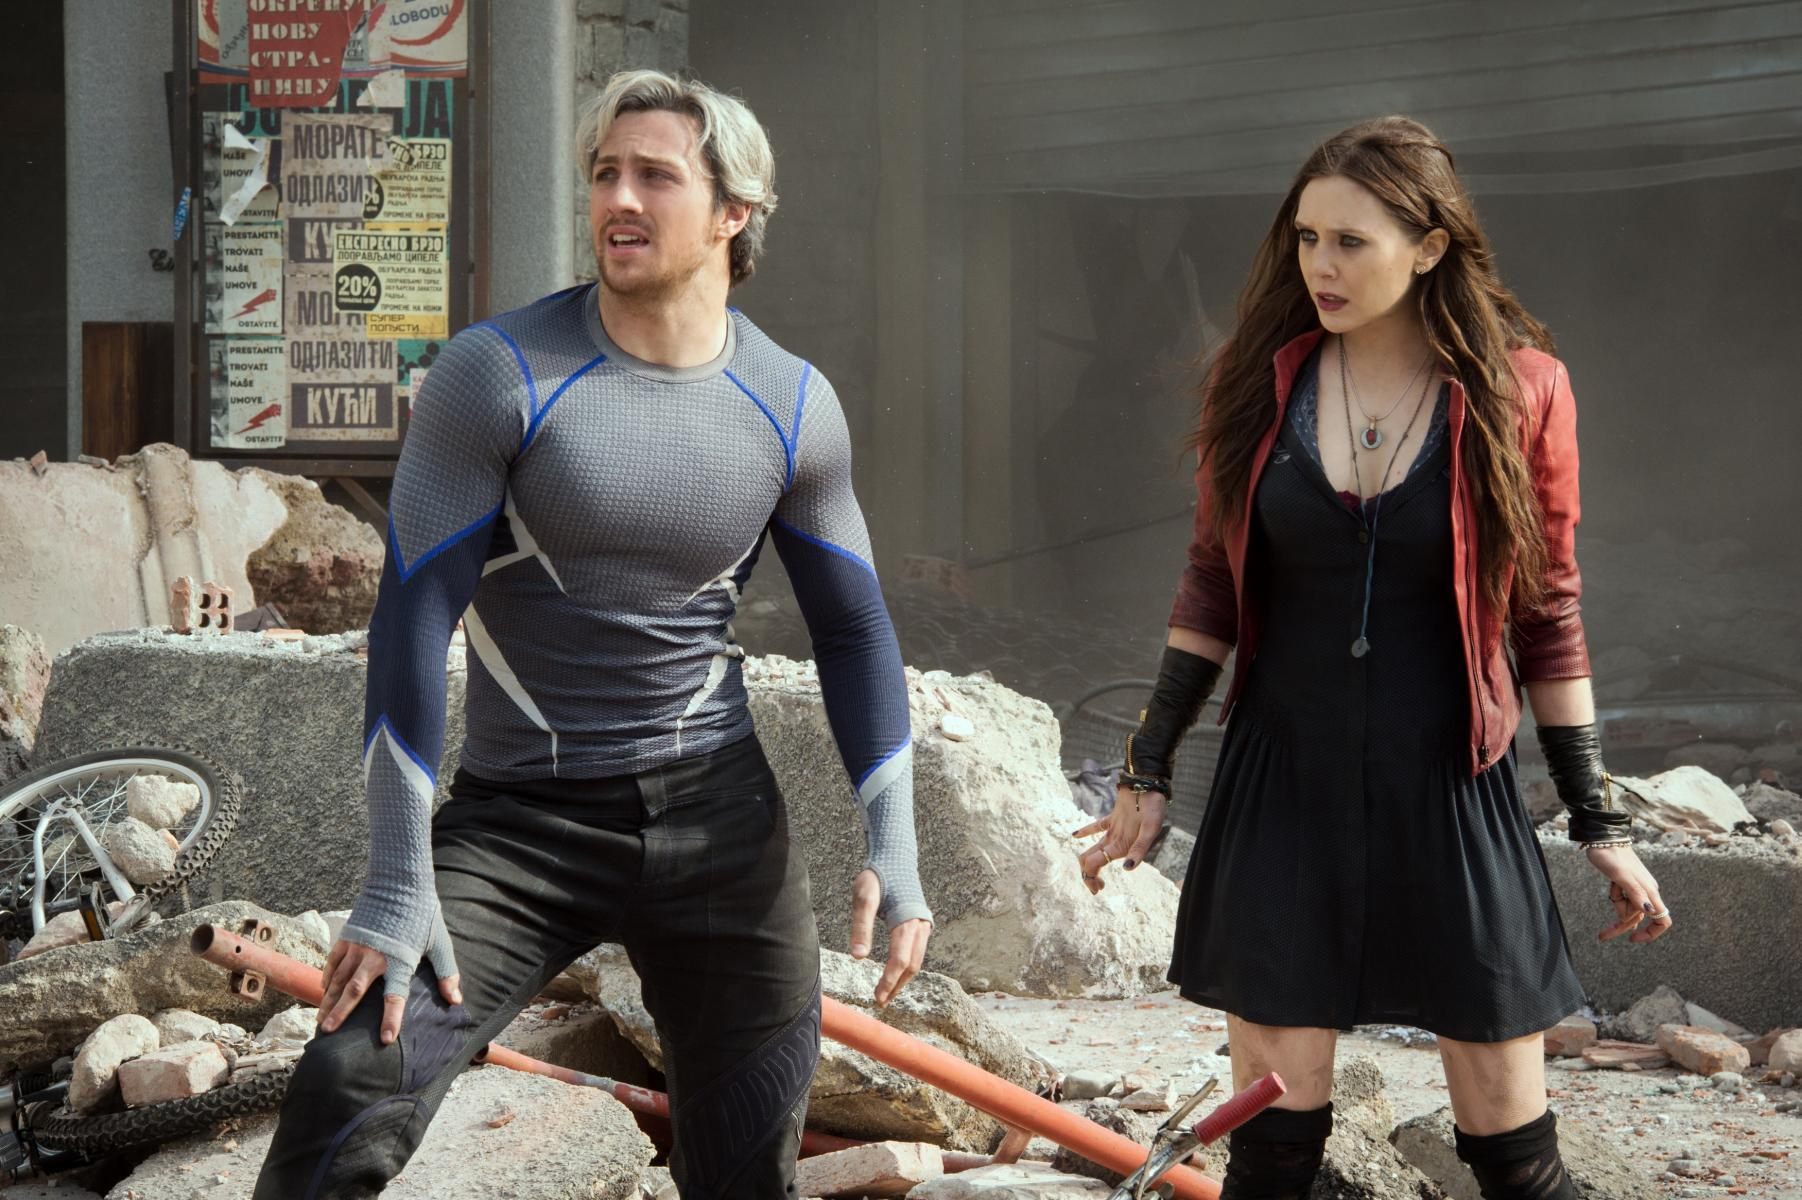 Image gallery for Avengers: Age of Ultron - FilmAffinity